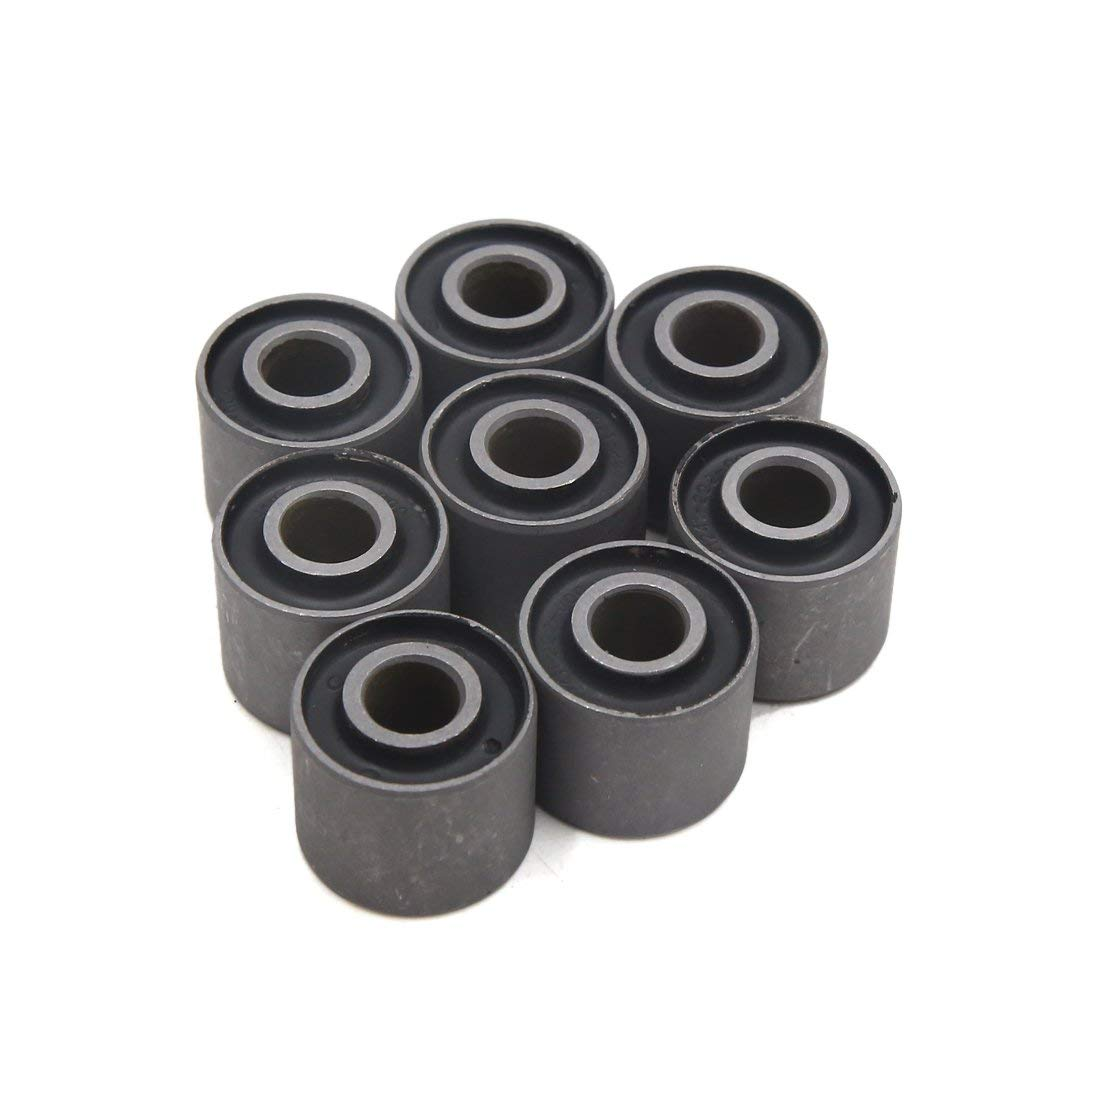 Uxcell A17090700ux0121 8Pcs 41241-222-000 Metal Motorcycle Rear Wheel Damper Bushing For CG125, 8 Pack